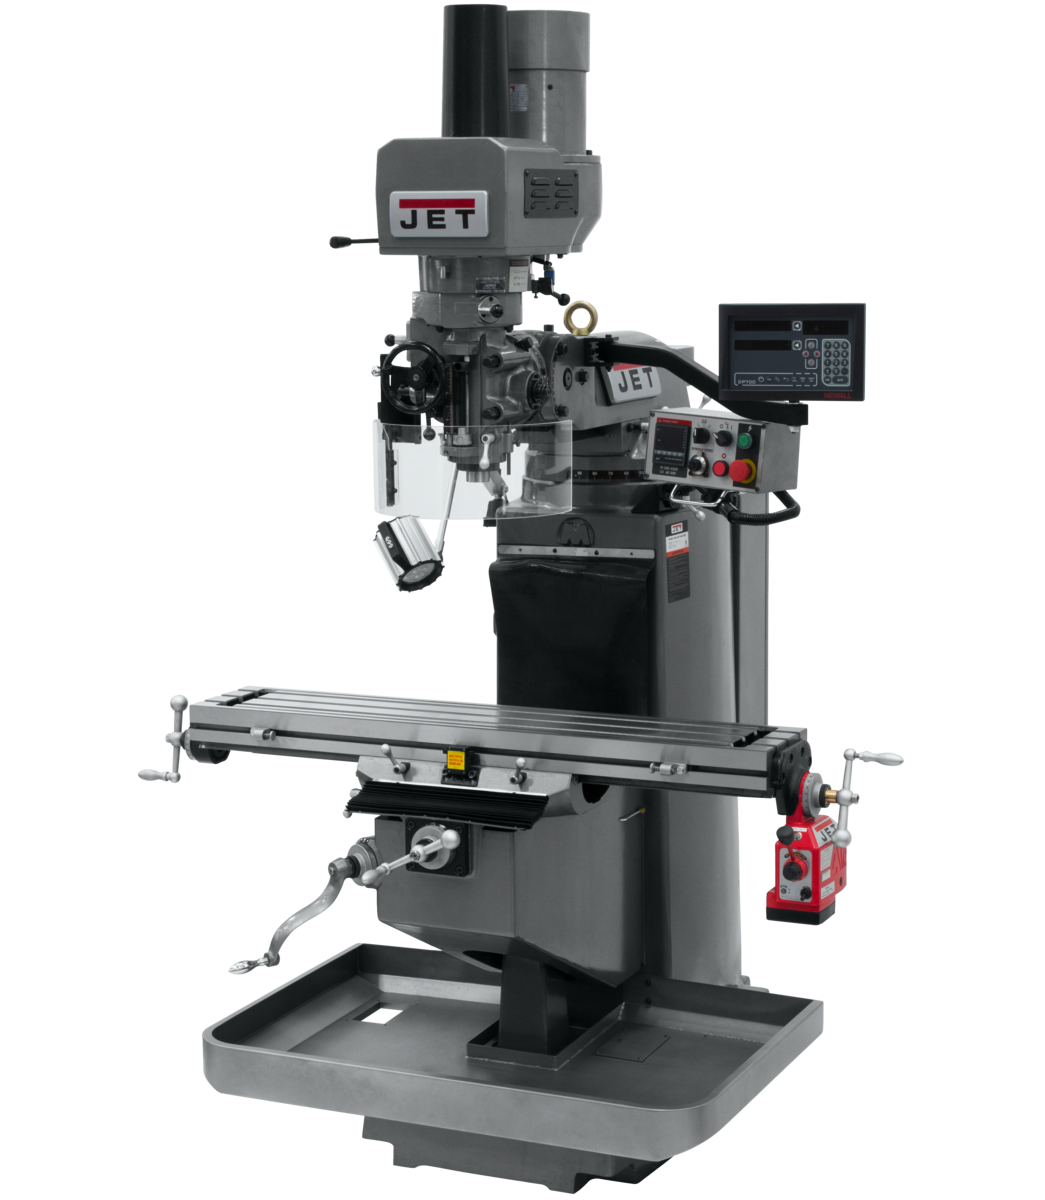 JTM-949EVS Mill With 3-Axis Newall DP700 DRO (Quill) With X-Axis Powerfeed and Air Powered Draw Bar